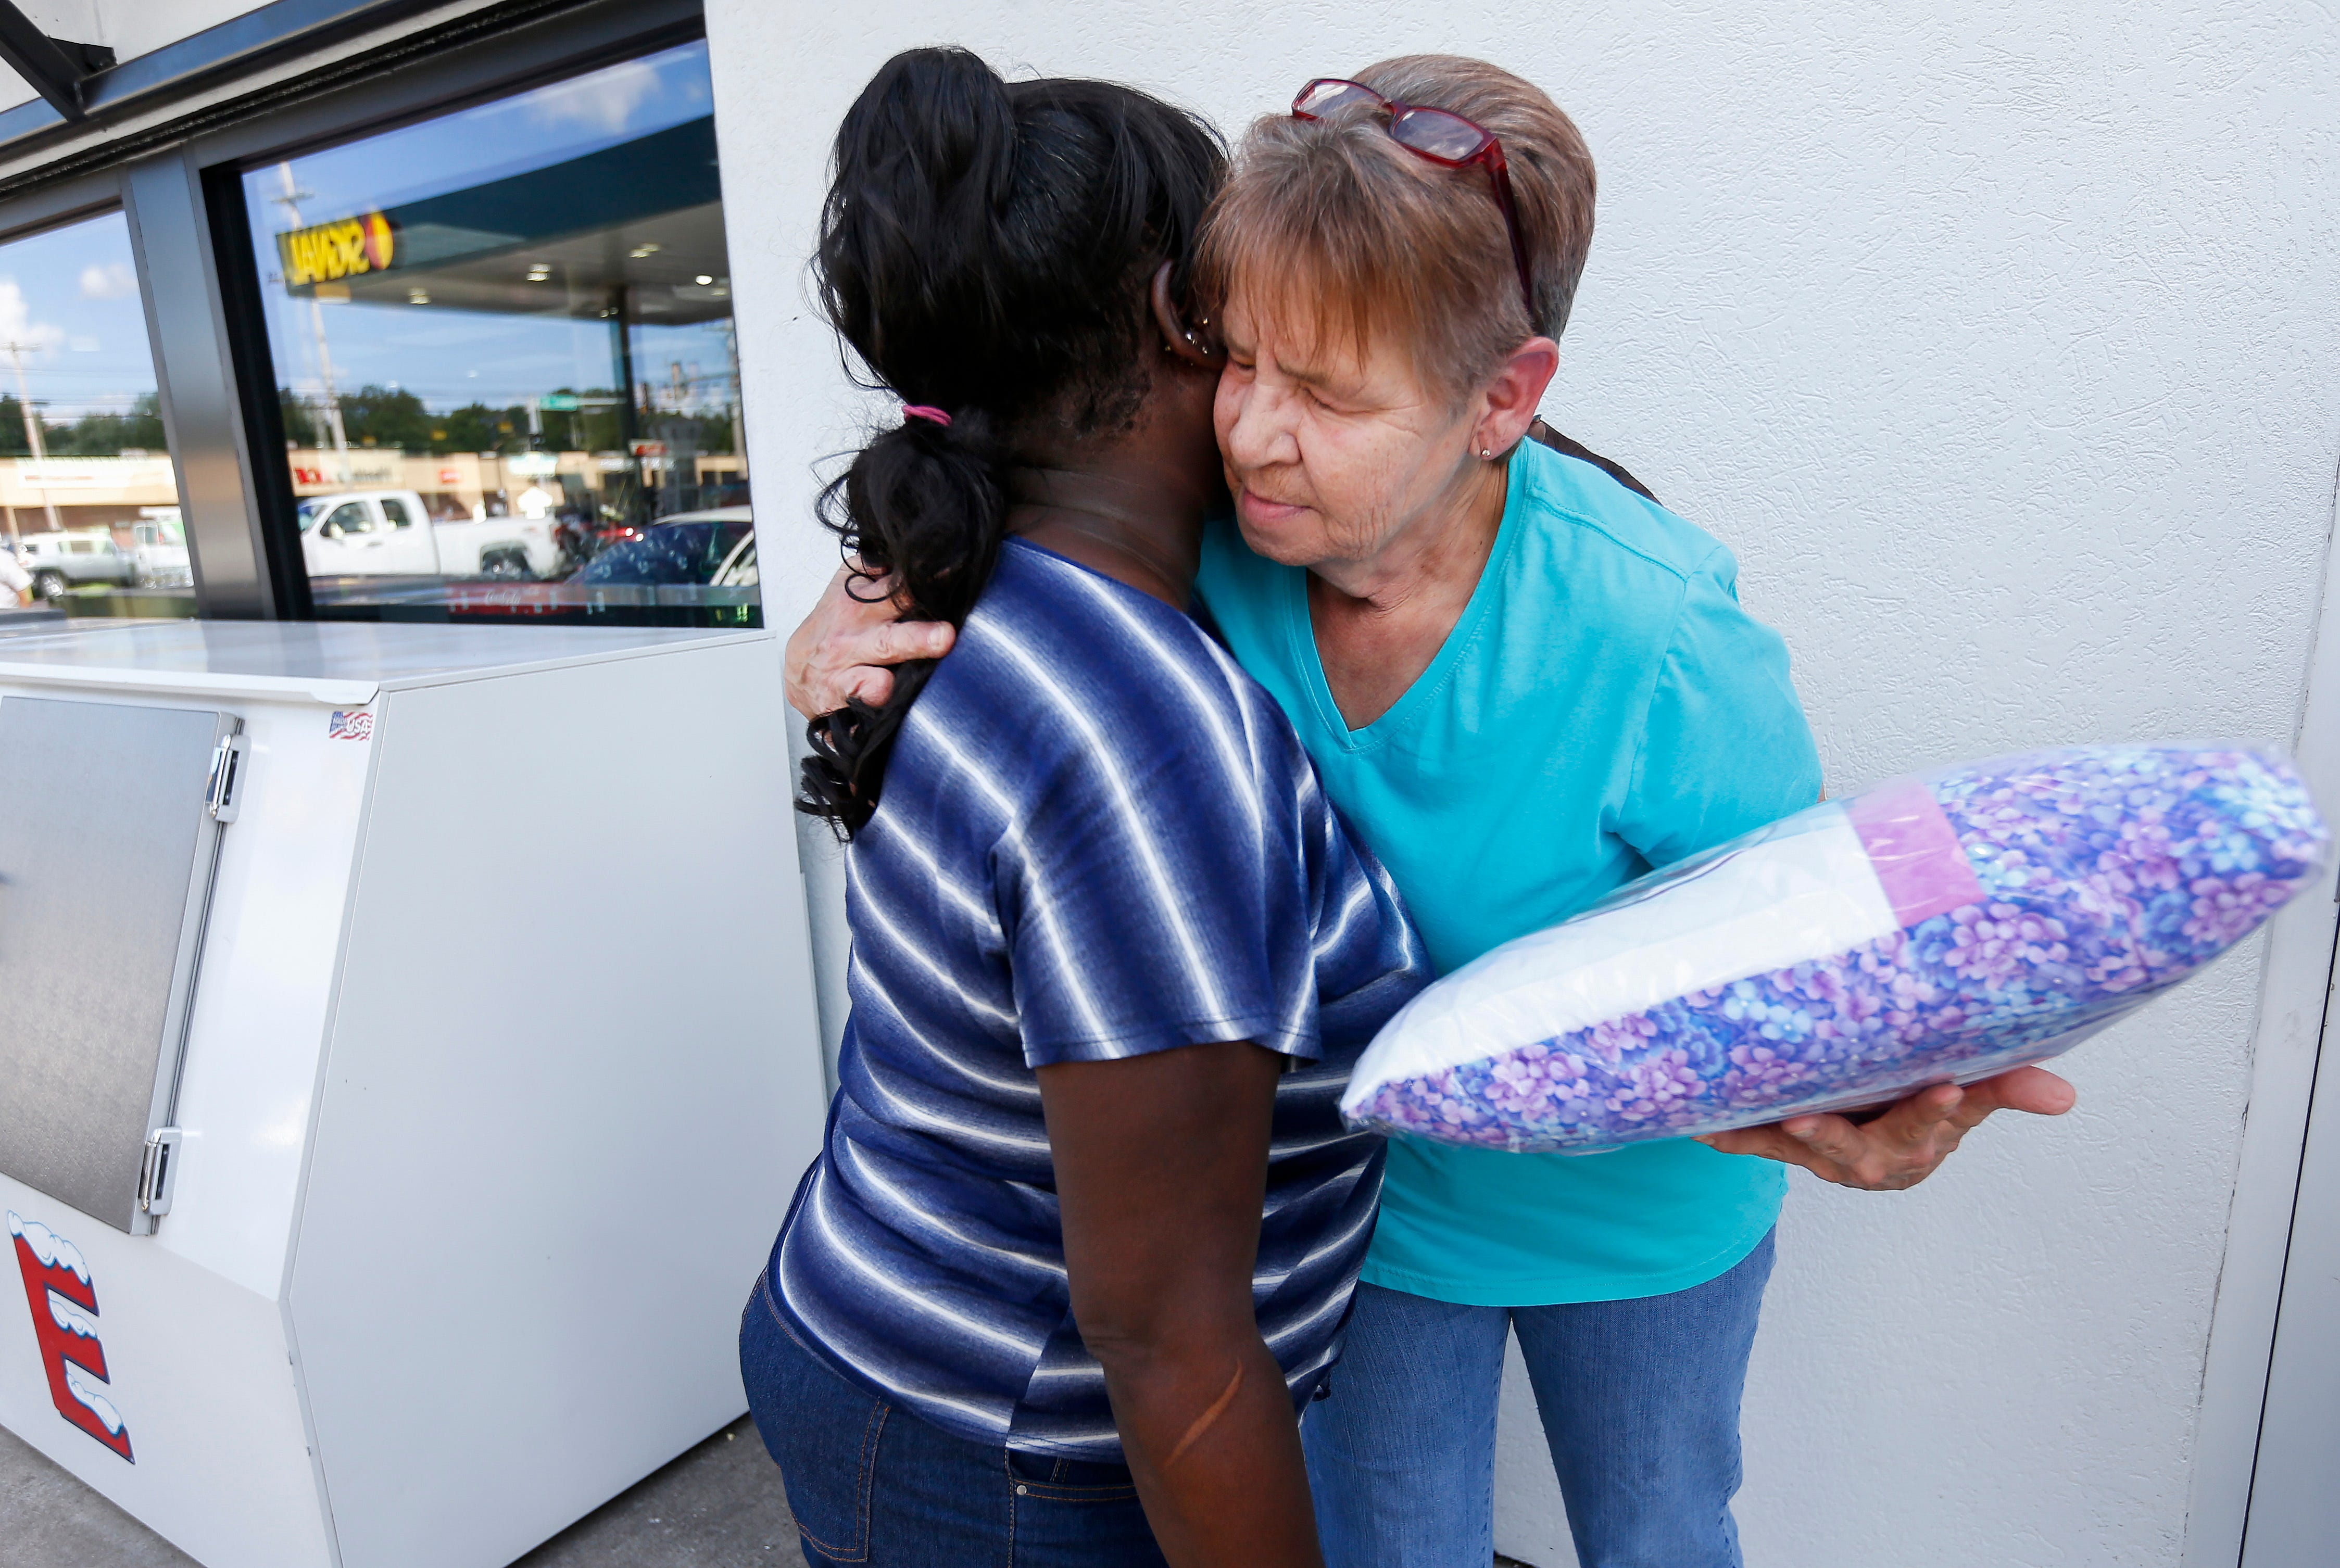 Linda Carter, left, the mother of Slyolandra Patterson, hugs Dee Lawson after she was presented with a memory pillow on Wednesday, Sep. 5, 2018. Patterson was found dead with a gunshot wound on Saturday, Aug. 25, 2018 inside a home in the 2600 block of South Fremont Avenue.